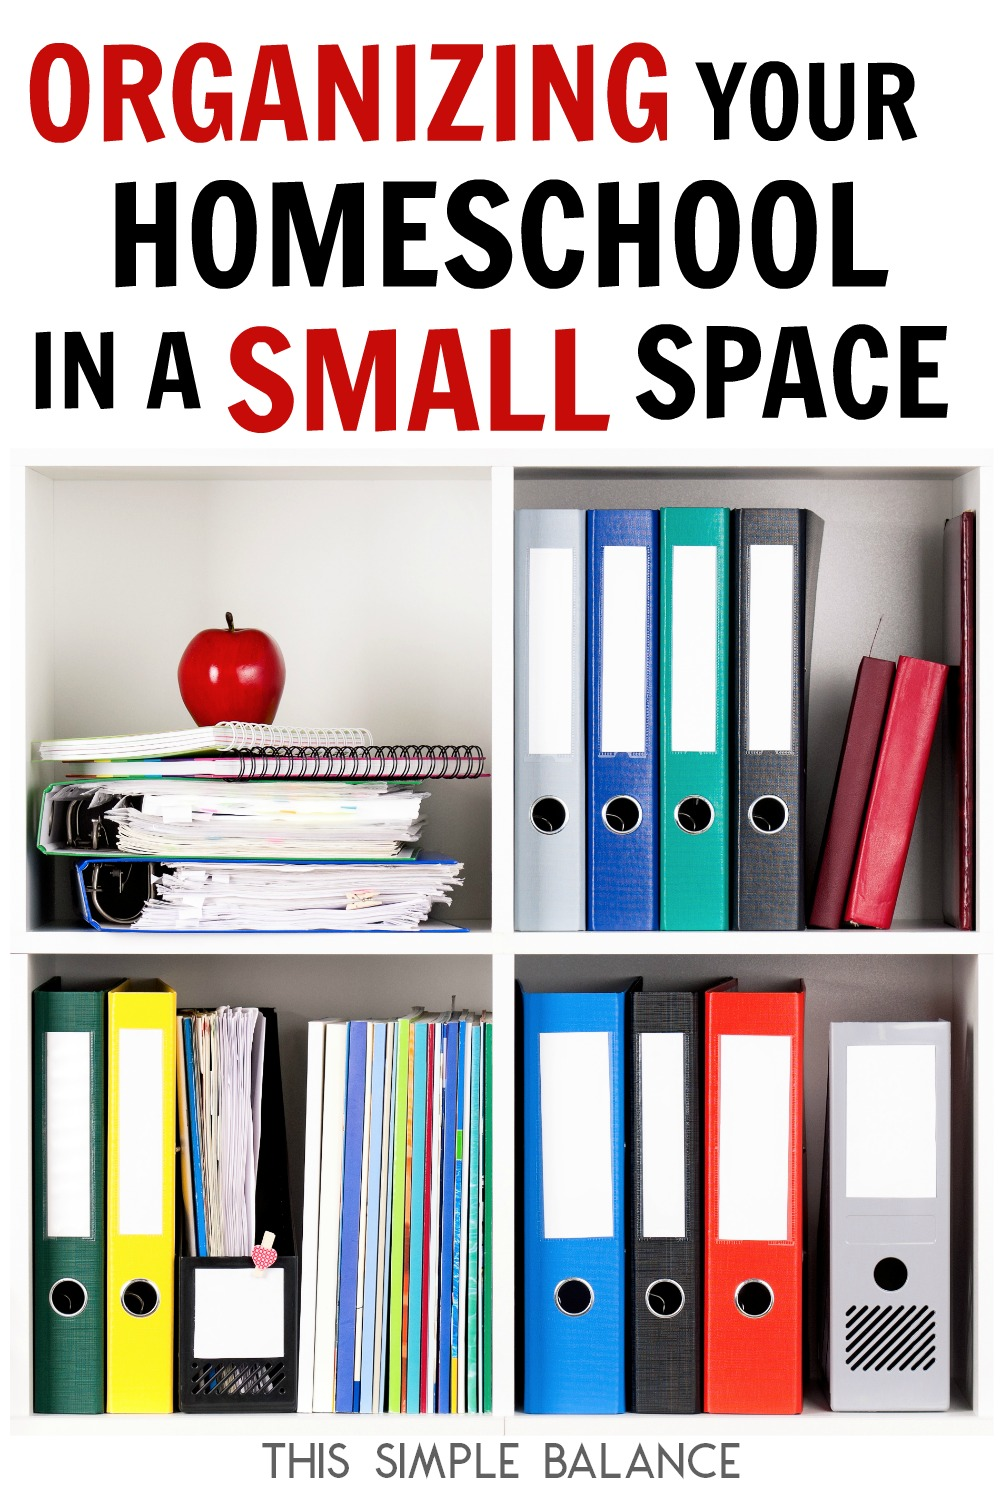 Keeping your homeschool organized when you live in a small home can be challenging. I know what it's like to homeschool without a dedicated homeschool room. It CAN be done! Check out these ideas to start getting organized.